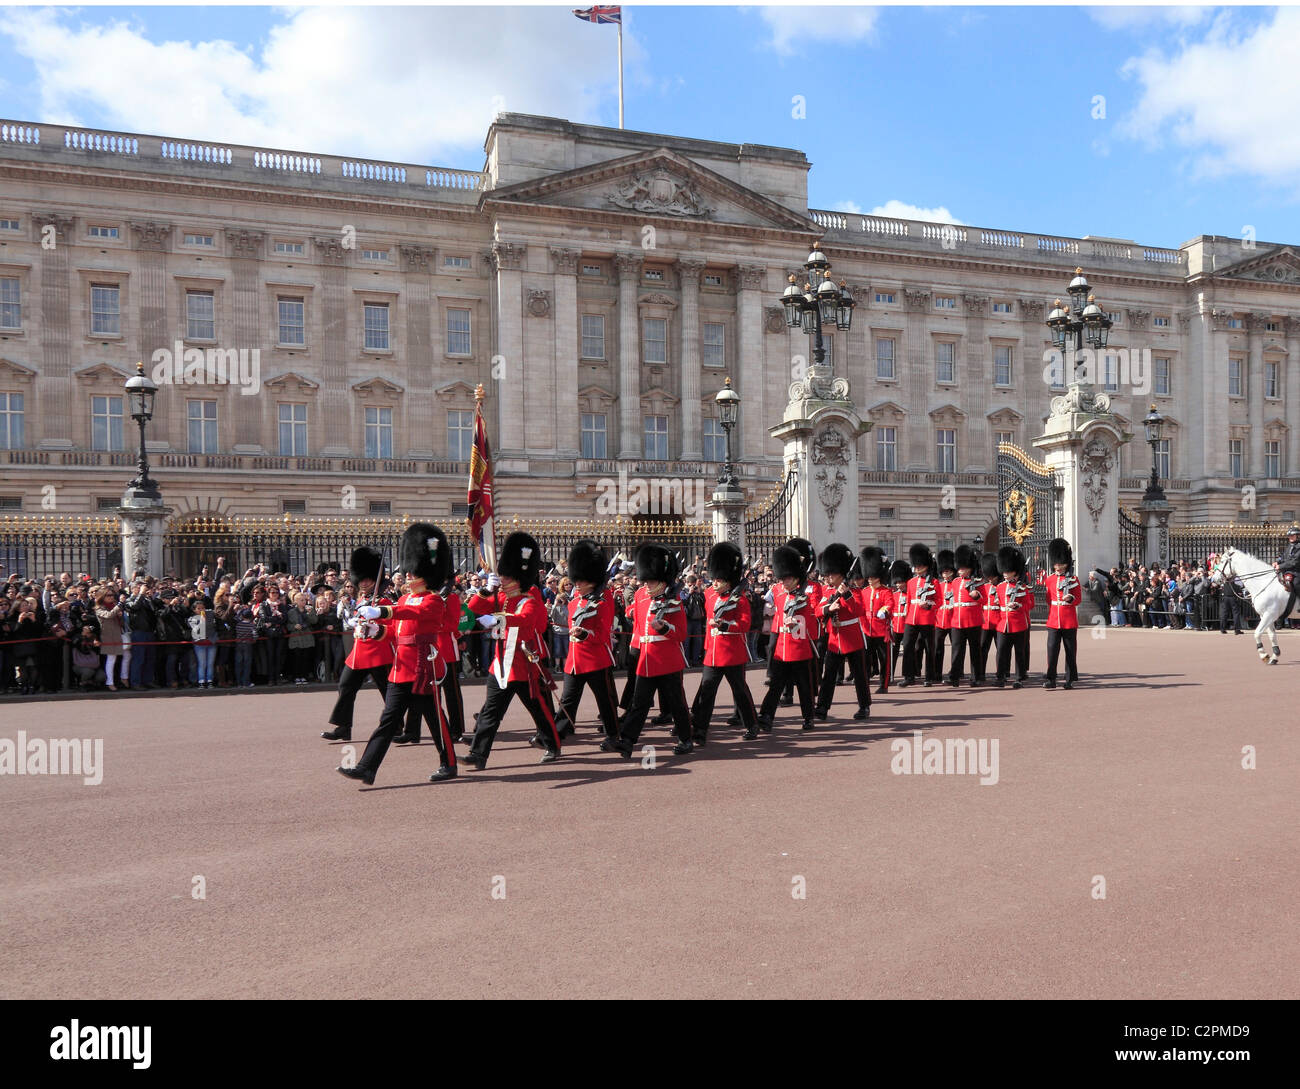 Changing the Guard at Buckingham Palace in London - Stock Image